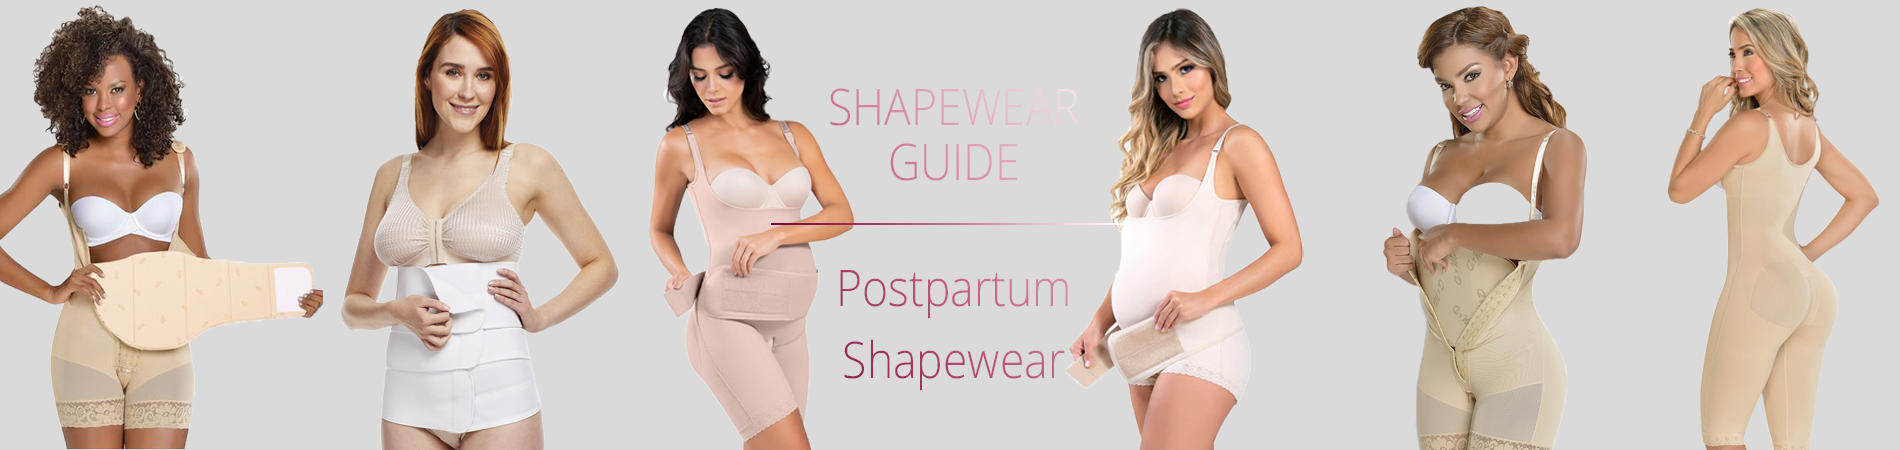 Postpartum Shapewear Guide for After Pregnancy